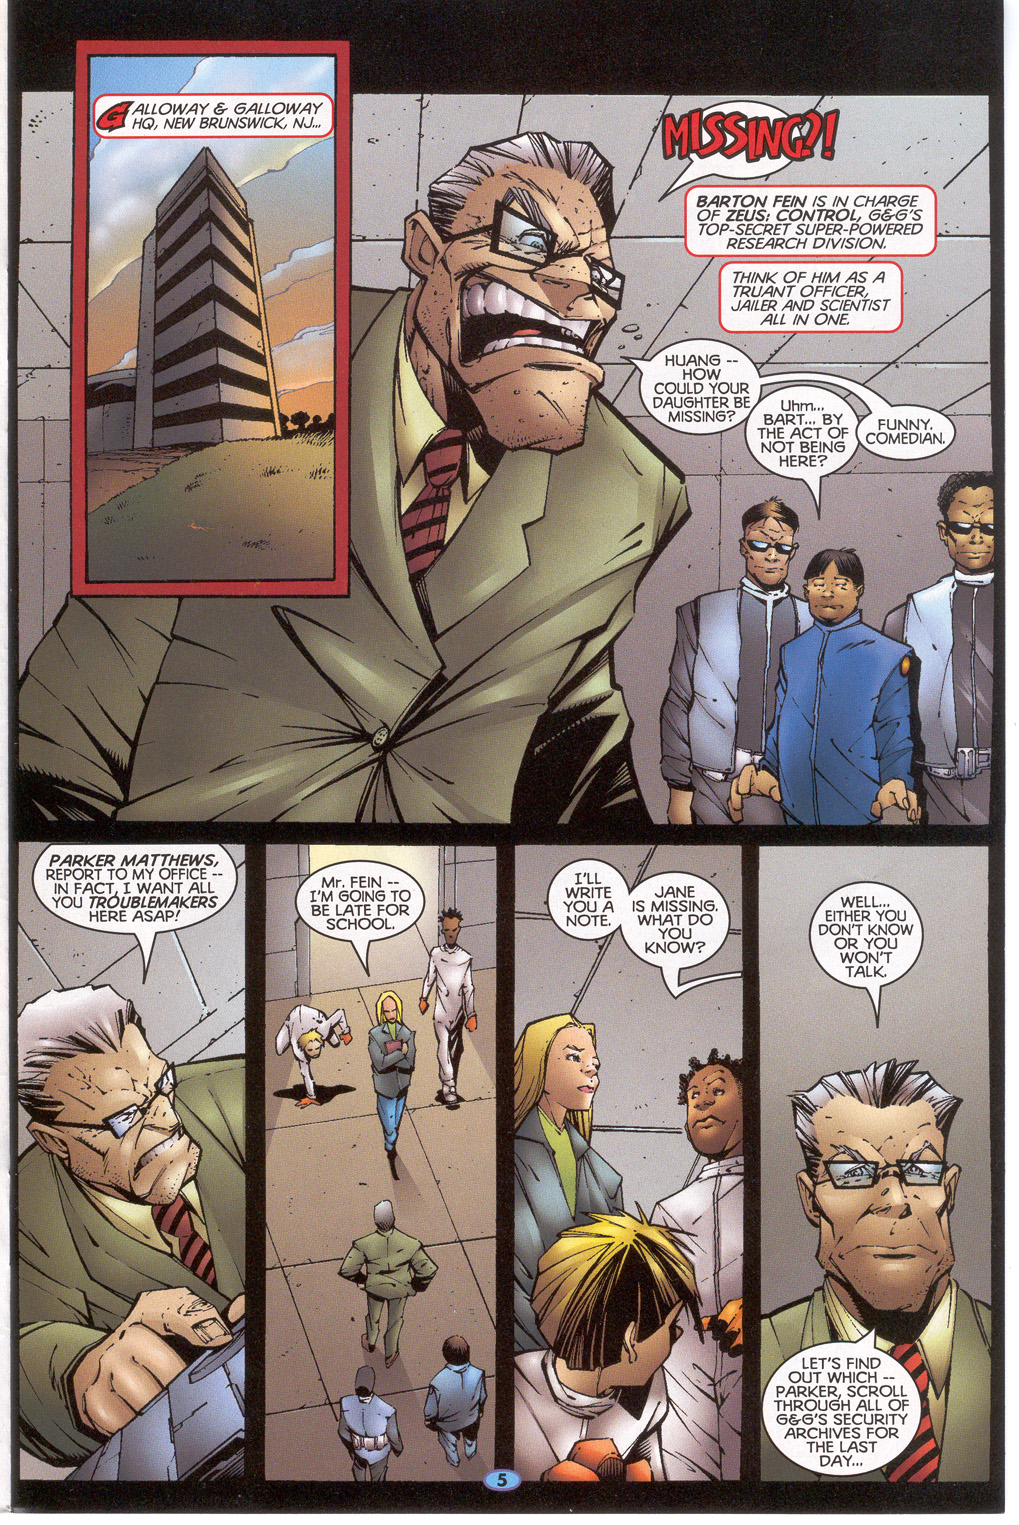 Read online Troublemakers comic -  Issue #7 - 6